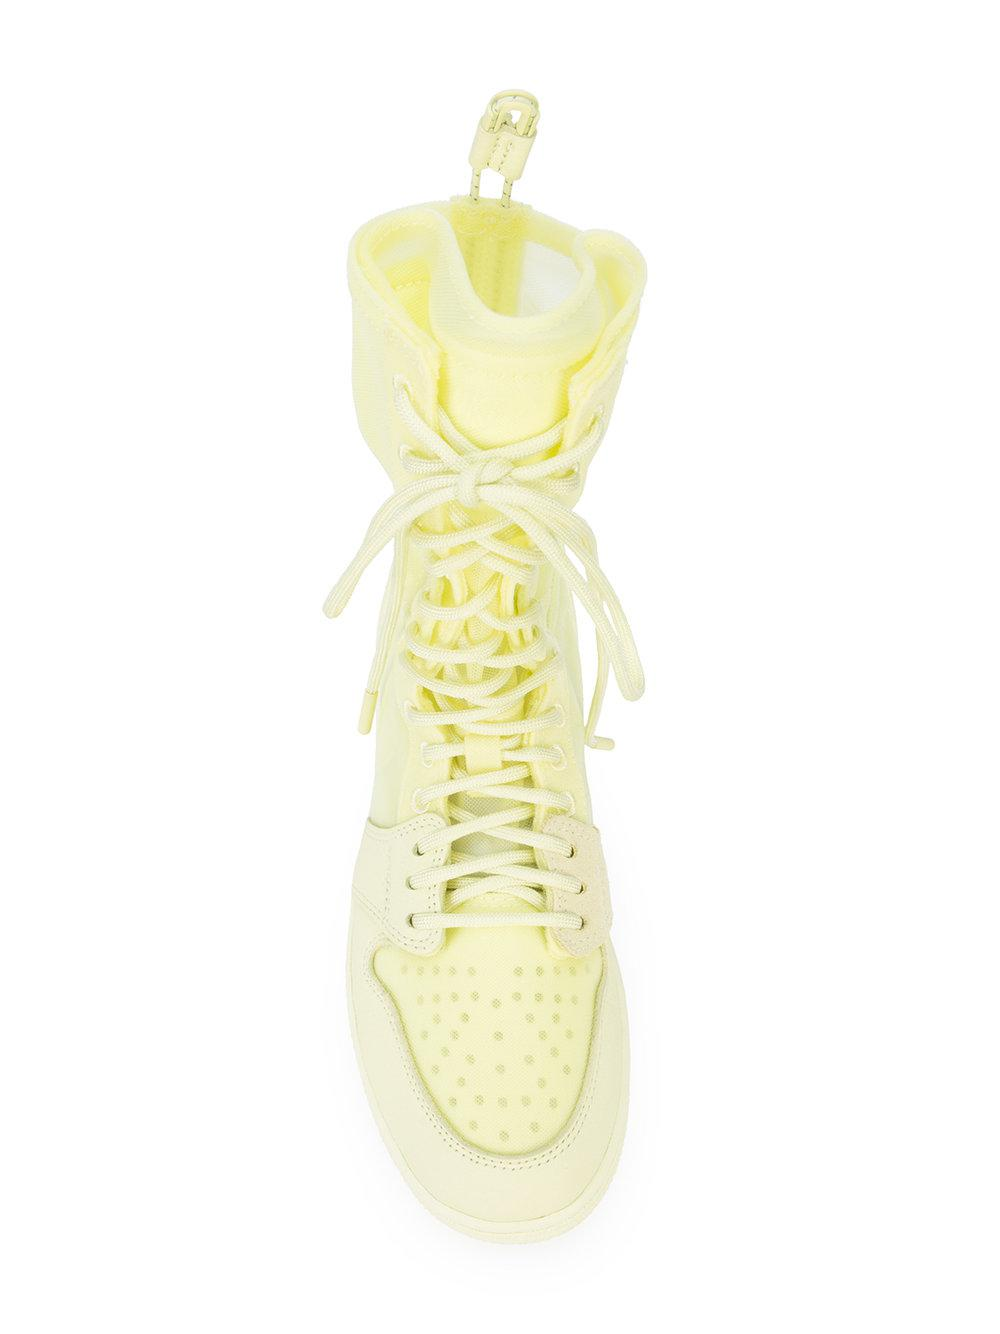 dd9413d7c69a90 Lyst - Nike Air Jordan 1 Explorer Xx Sneakers in Yellow for Men